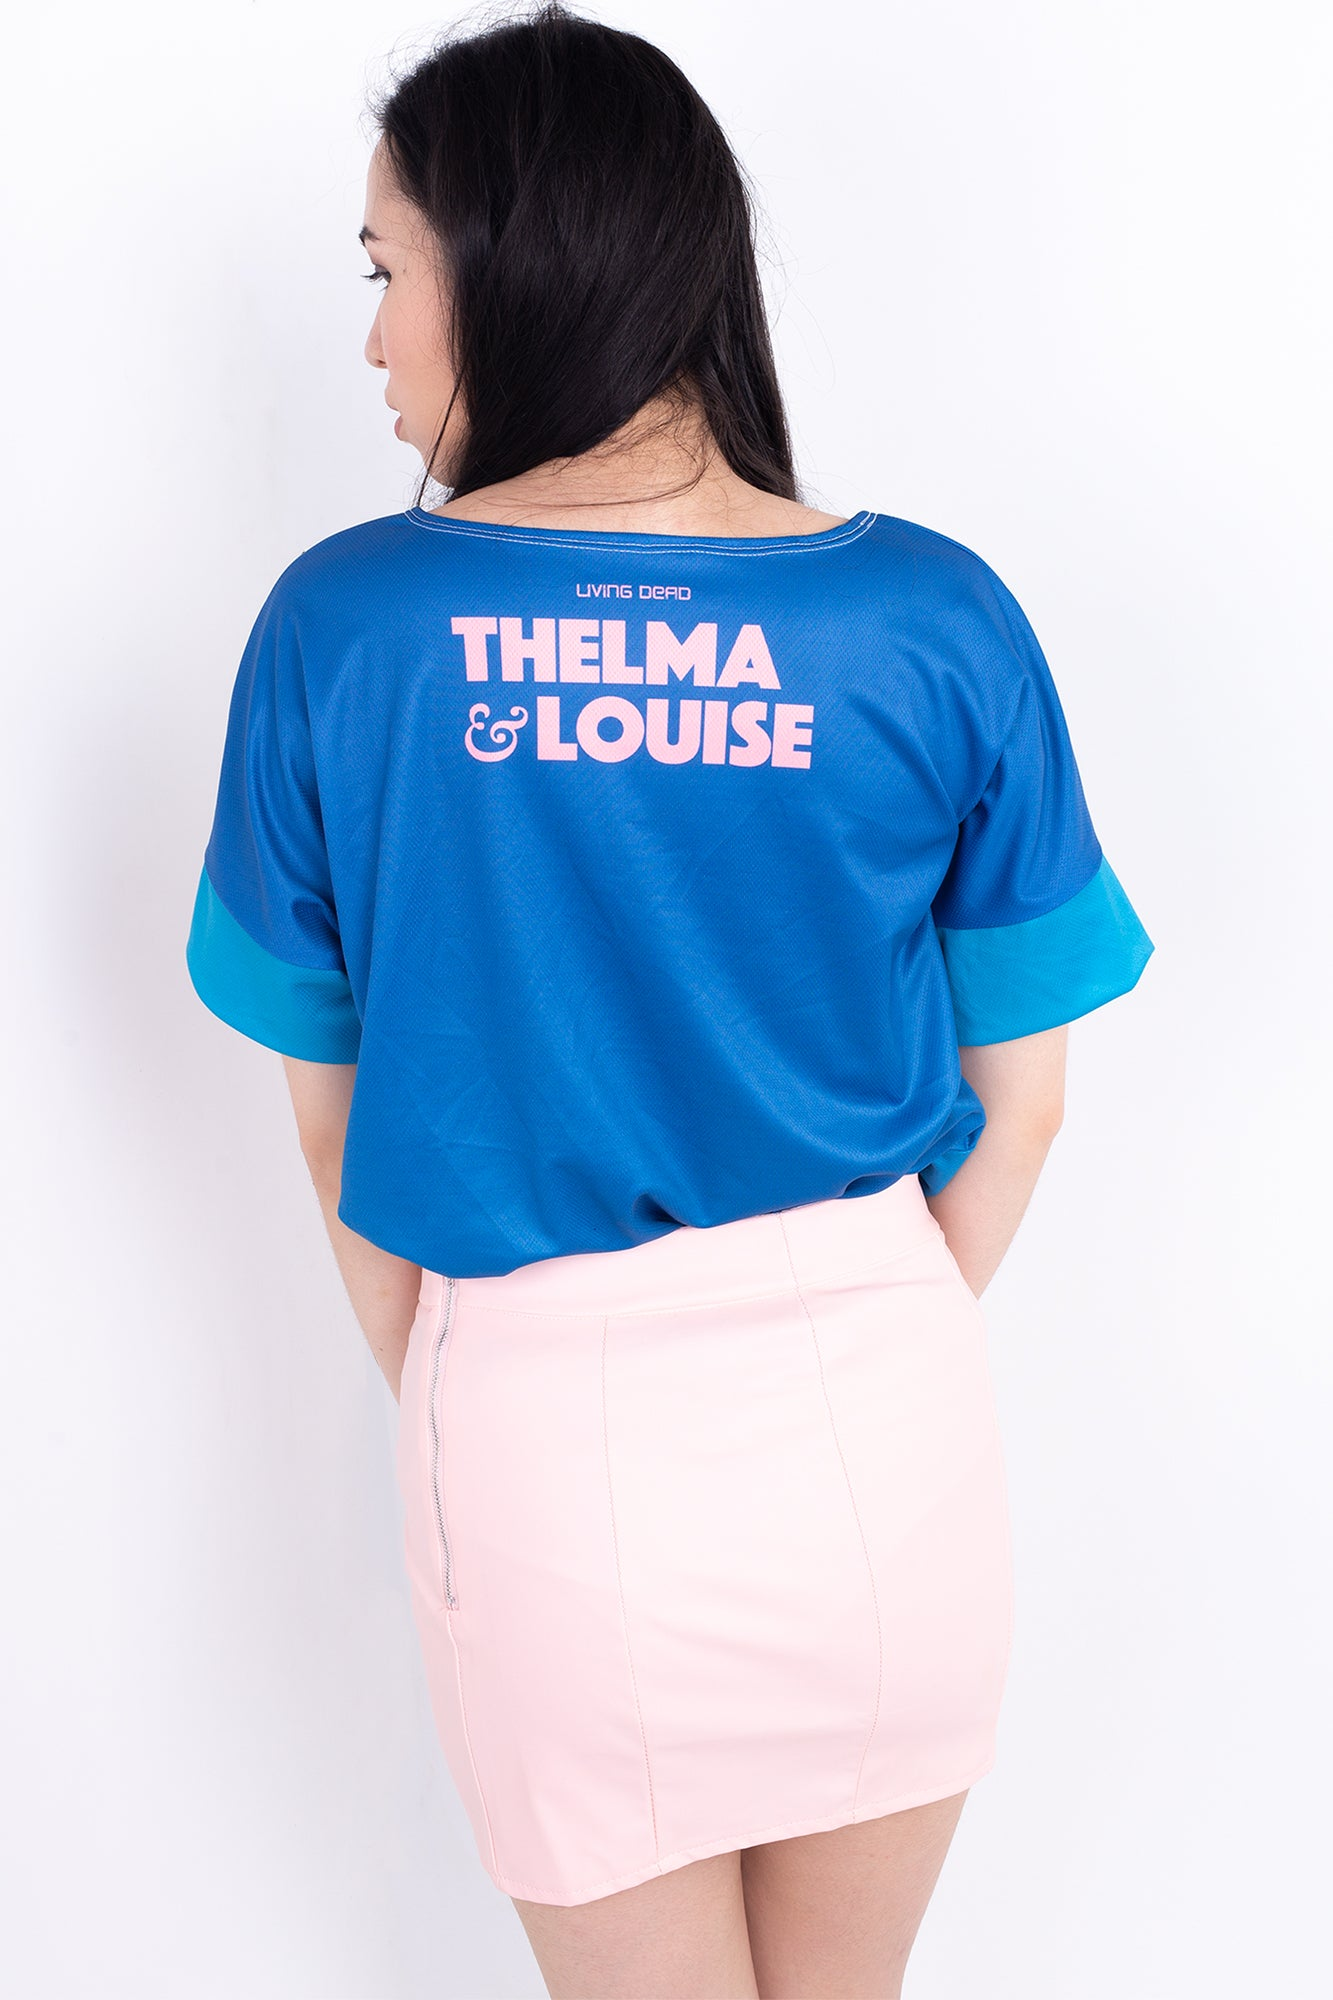 Thelma And Louise Triple Threat Tee